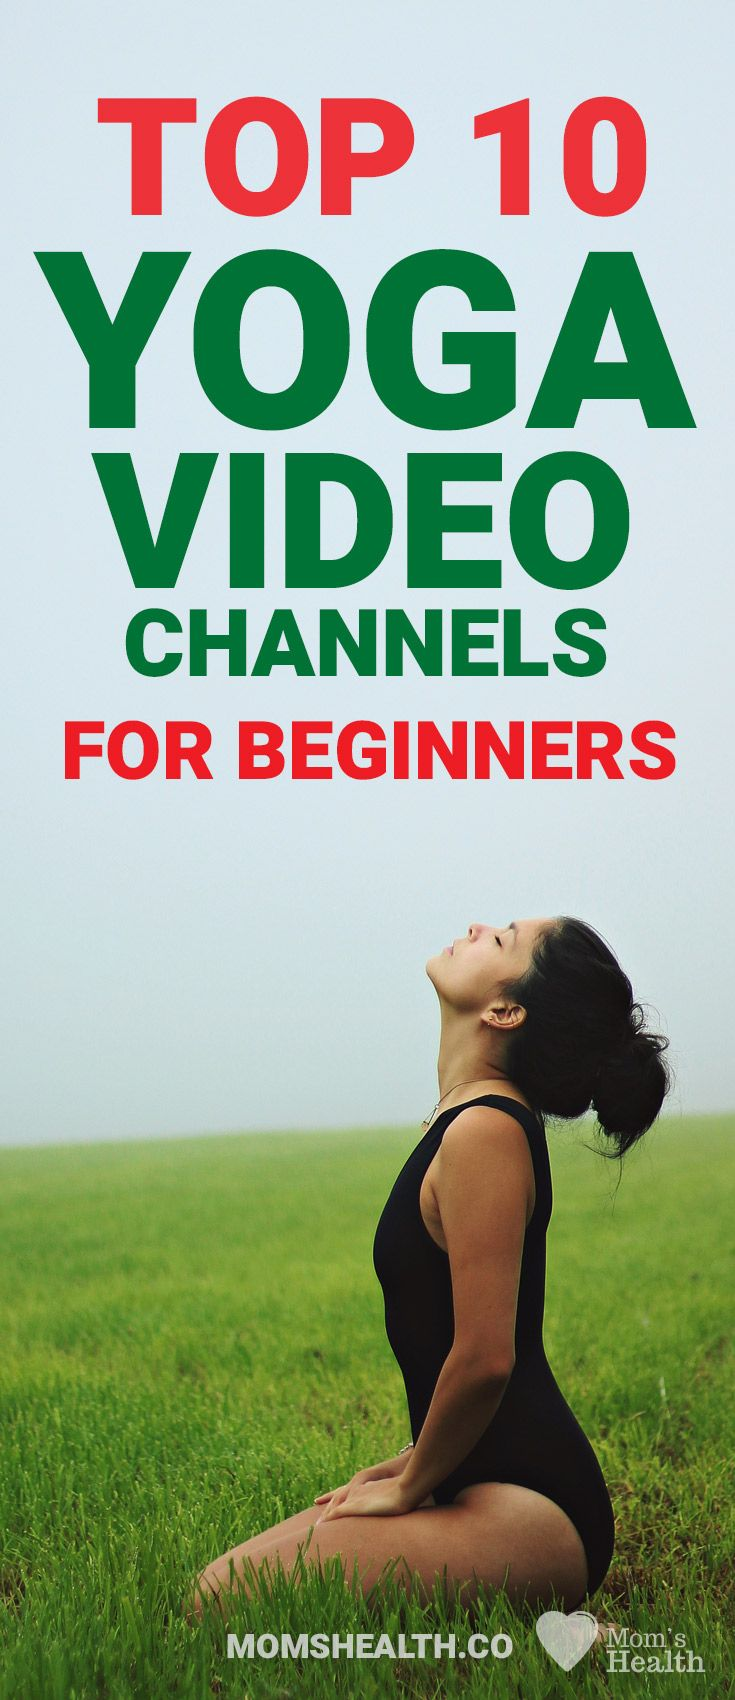 It's a great collection of yoga video channels with free video classes of yoga for beginners. Find your ideal yoga video for beginners sequence and start practicing today! 30 minute or less - yoga video channels from professional Yogis with years of teaching and practice.